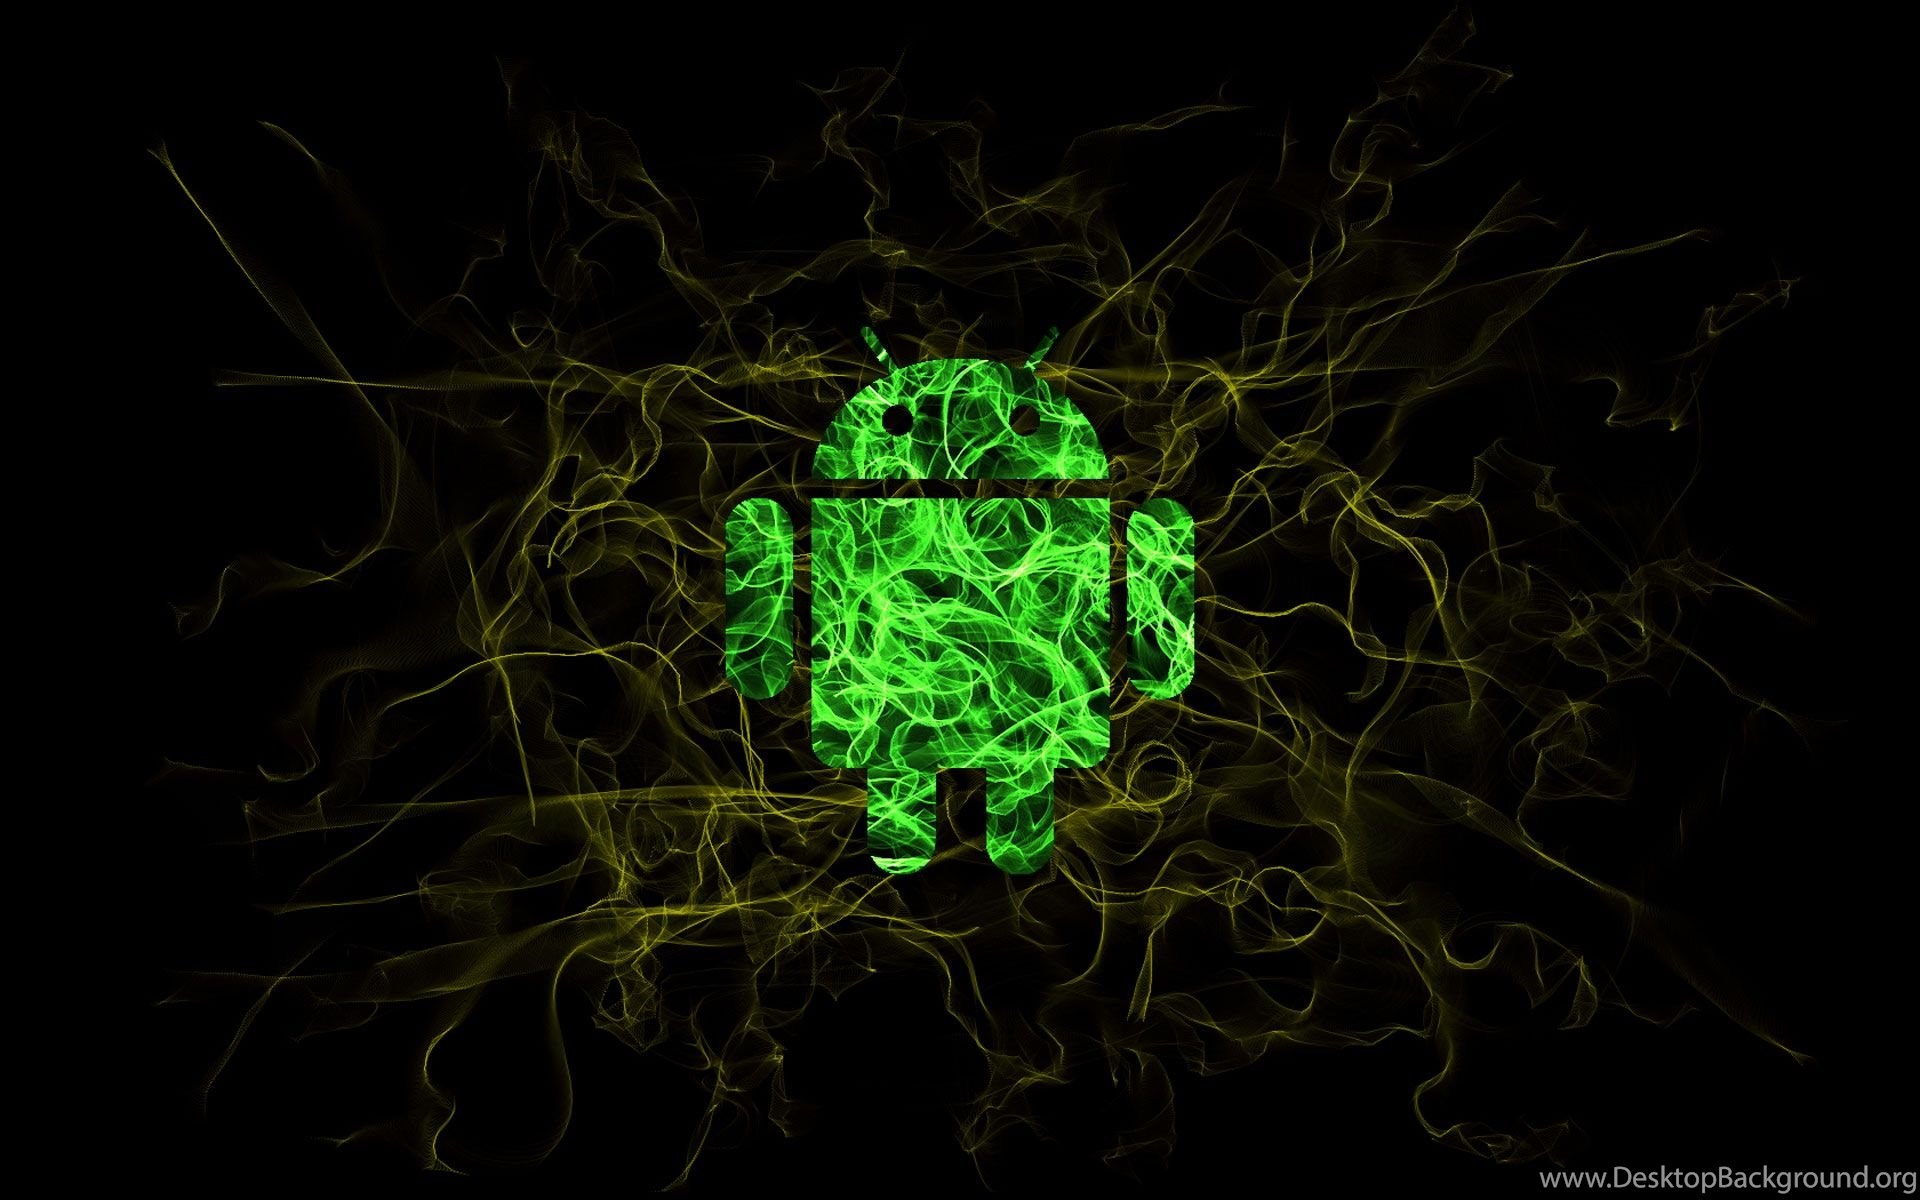 Free android wallpapers background themesg desktop background widescreen voltagebd